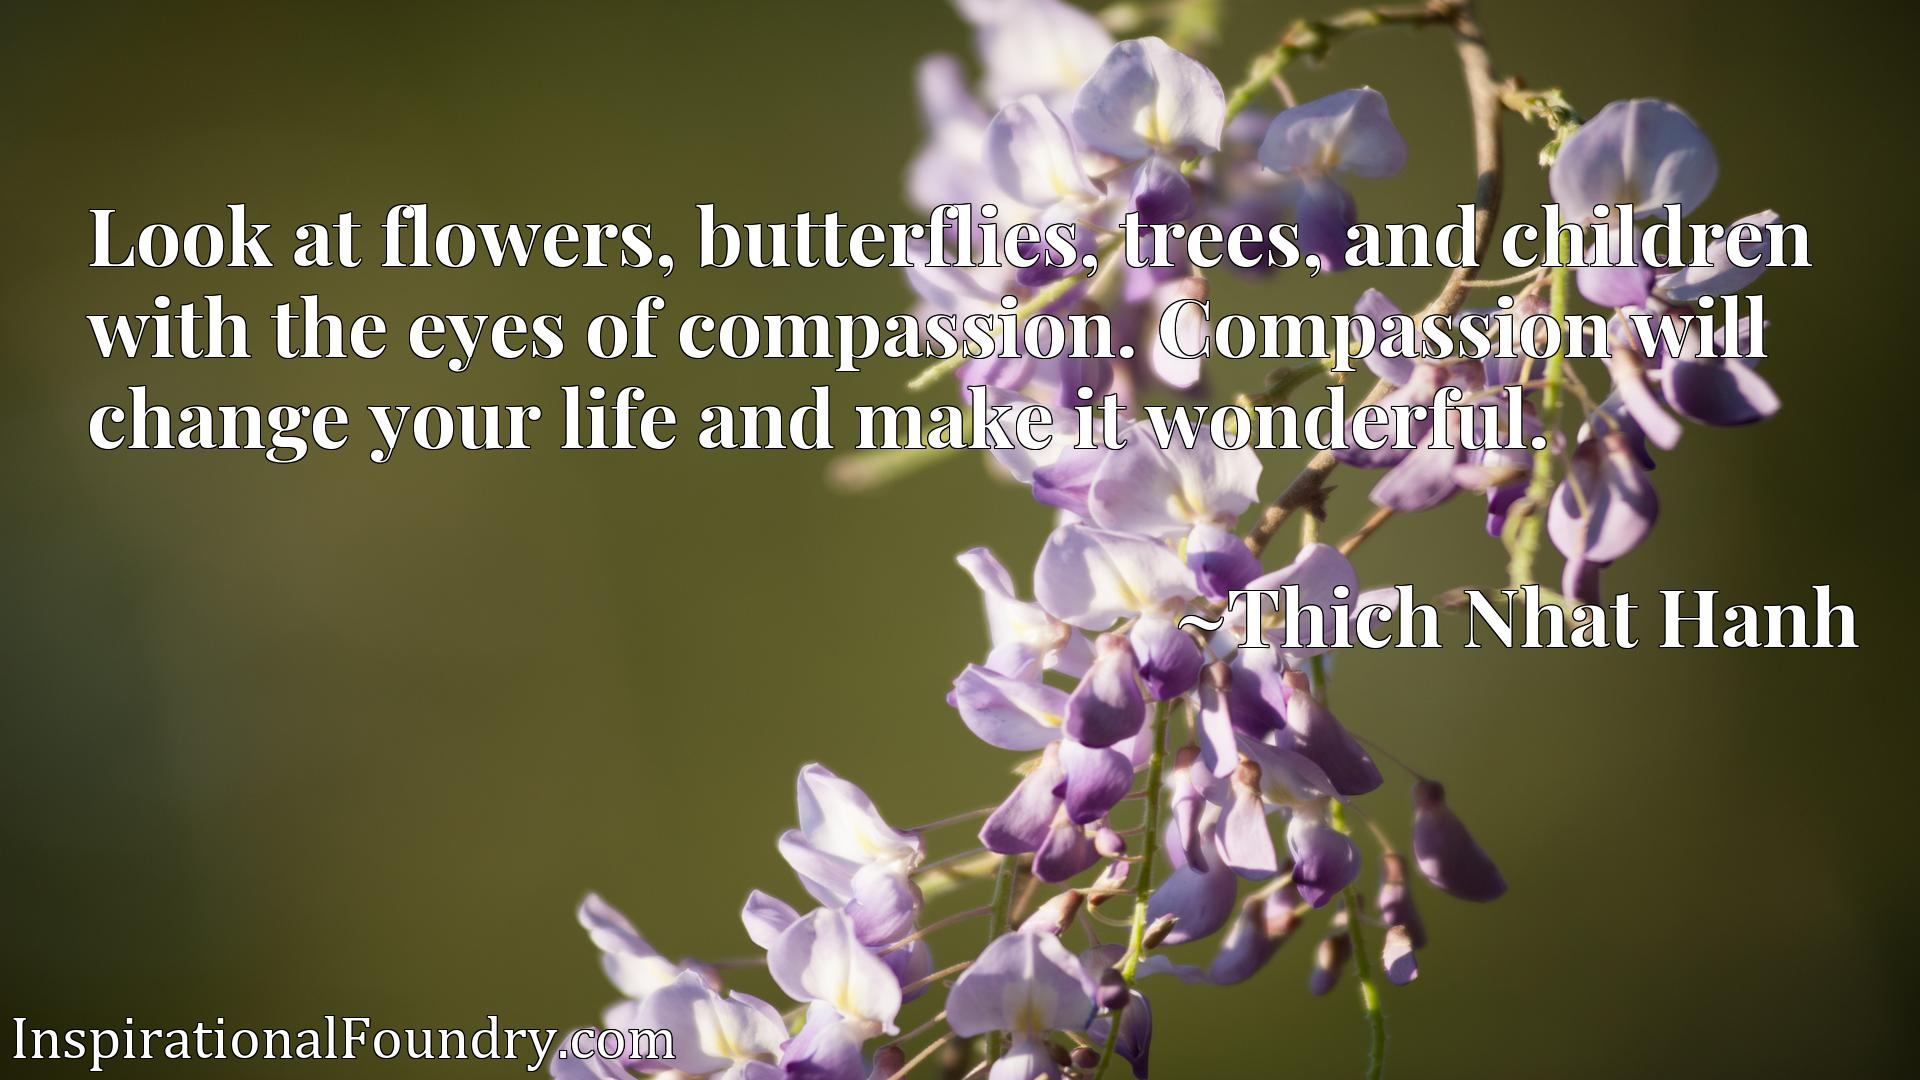 Look at flowers, butterflies, trees, and children with the eyes of compassion. Compassion will change your life and make it wonderful.